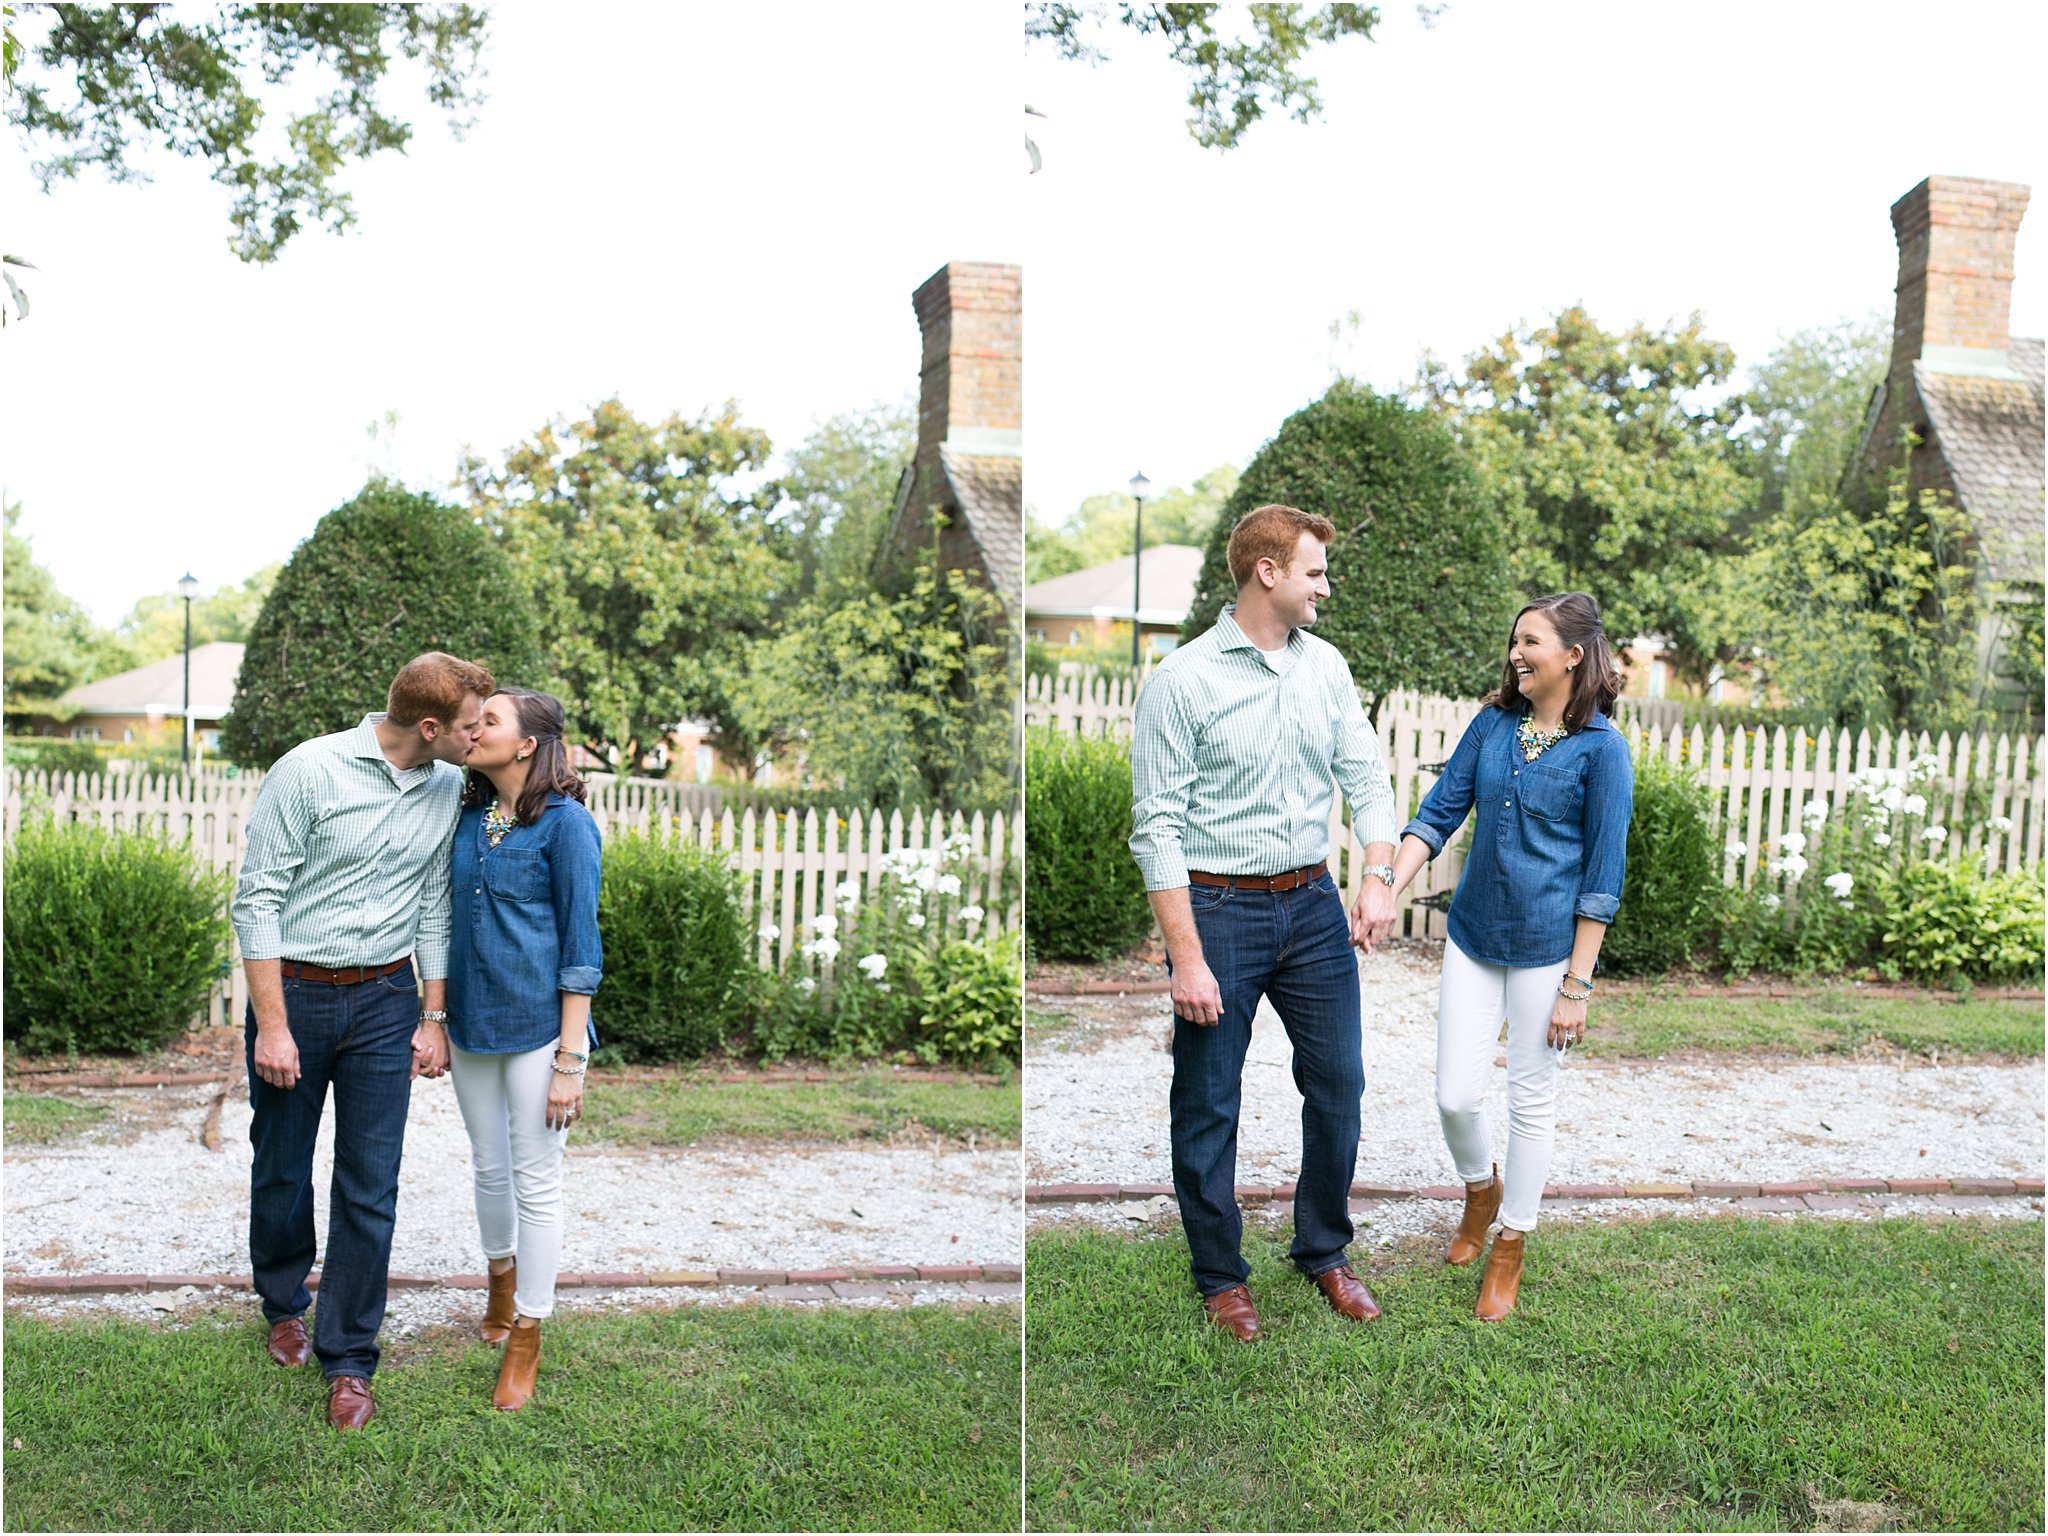 jessica_ryan_photography_virginia_virginia_beach_francis_land_house__portraits_bride_and_groom_beloved_historical_home_engagement_portraits_candid_authentic_engagements_2712